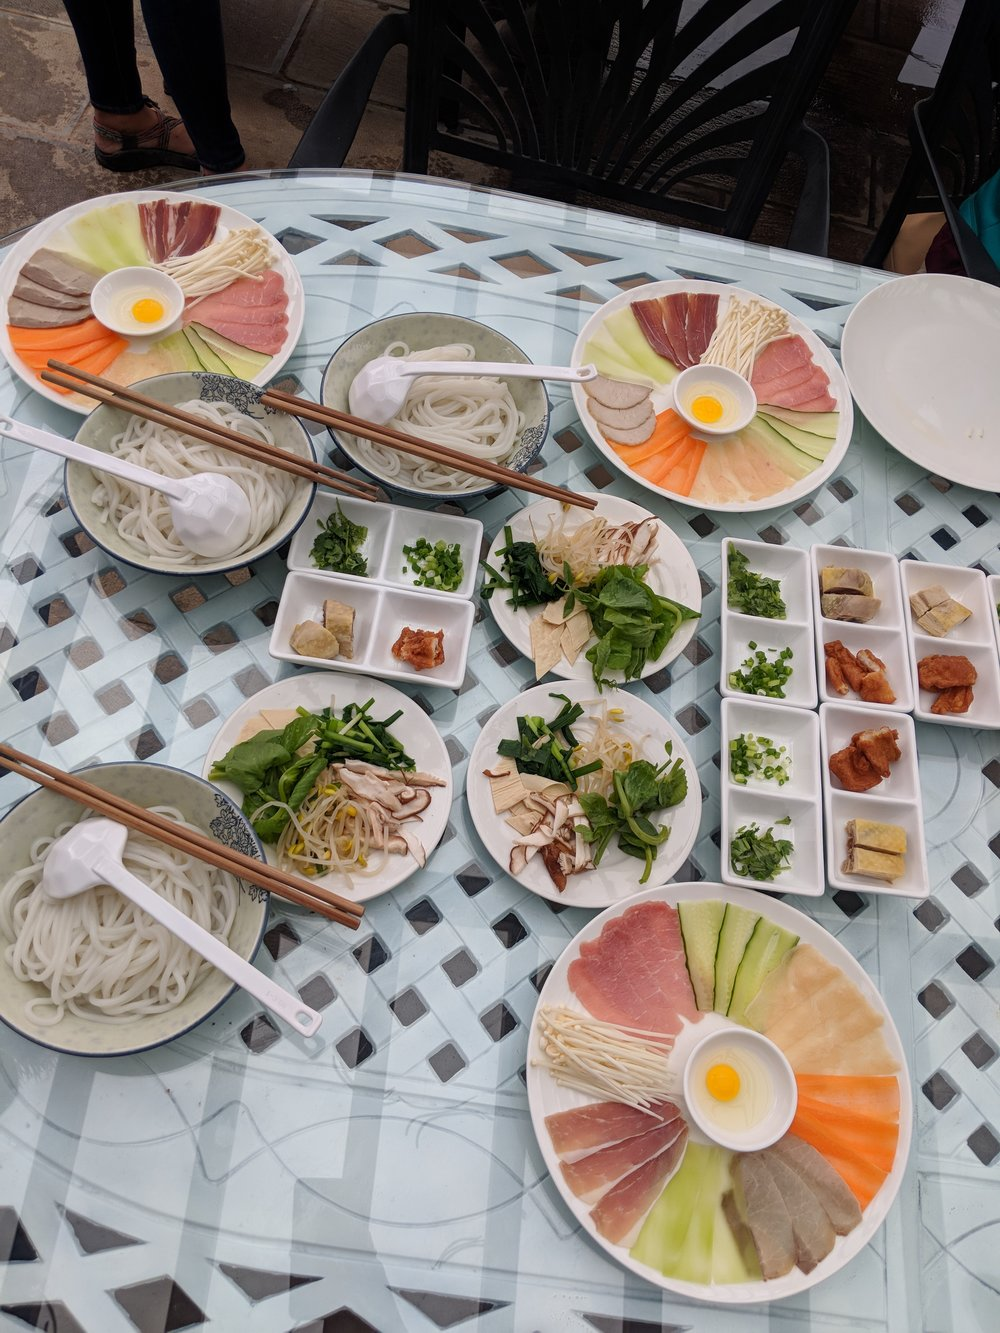 The spread of vegetables and meats for our Across the Bridge Noodles.